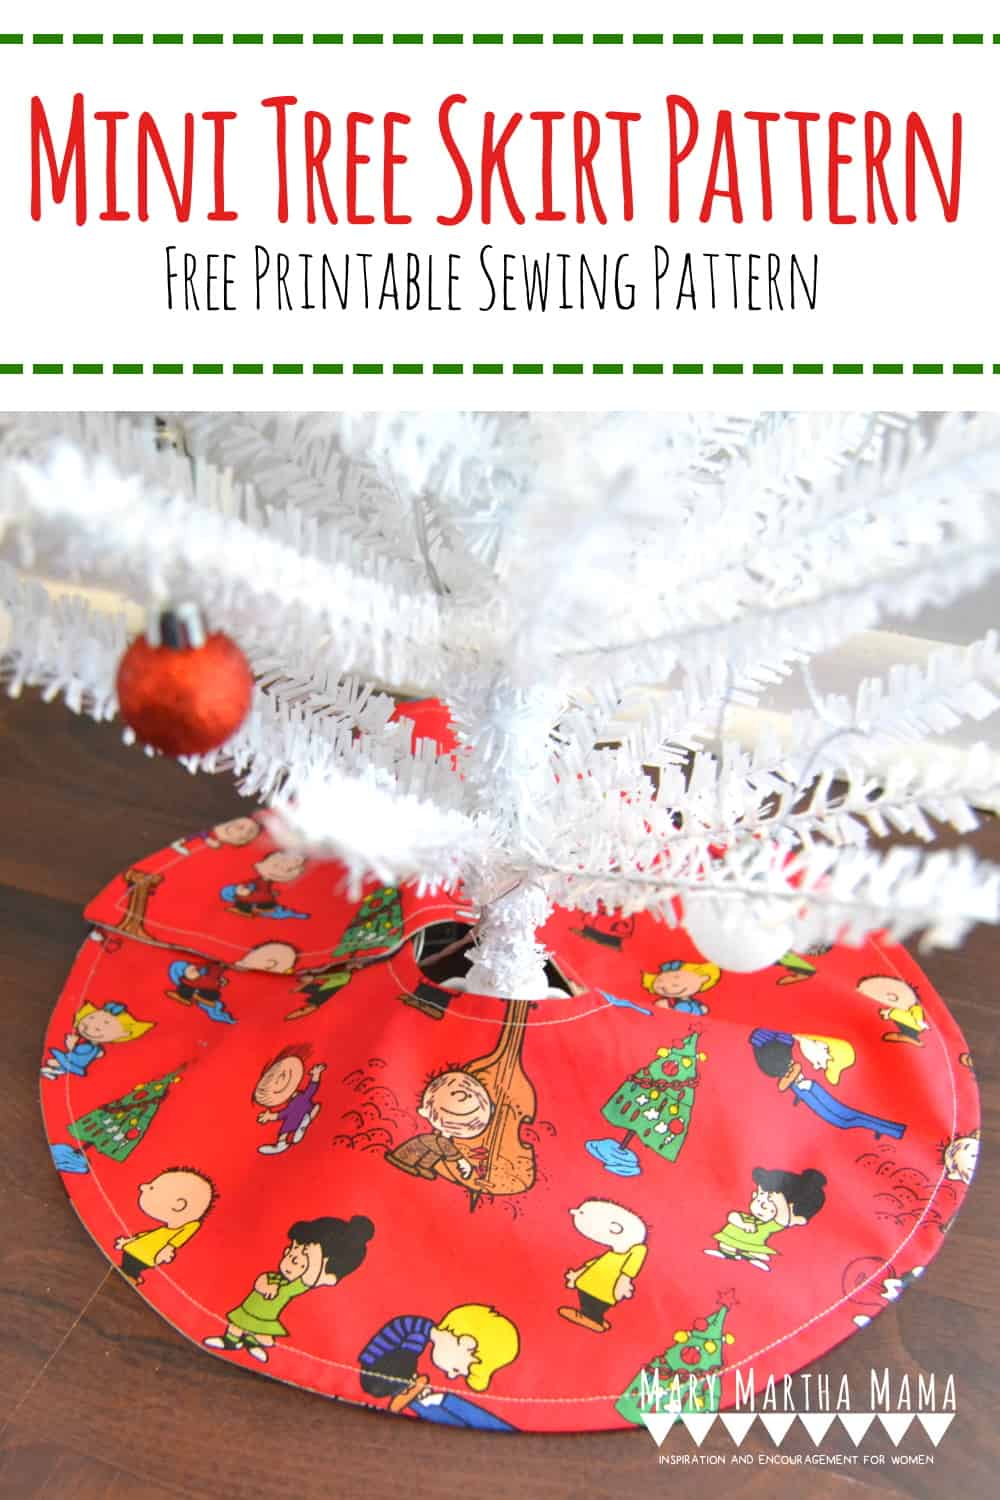 mini tree skirt pattern- free printable mini Christmas tree skirt pattern #minitreeskirtpattern #minichristmastreeskirtpattern #christmassewing